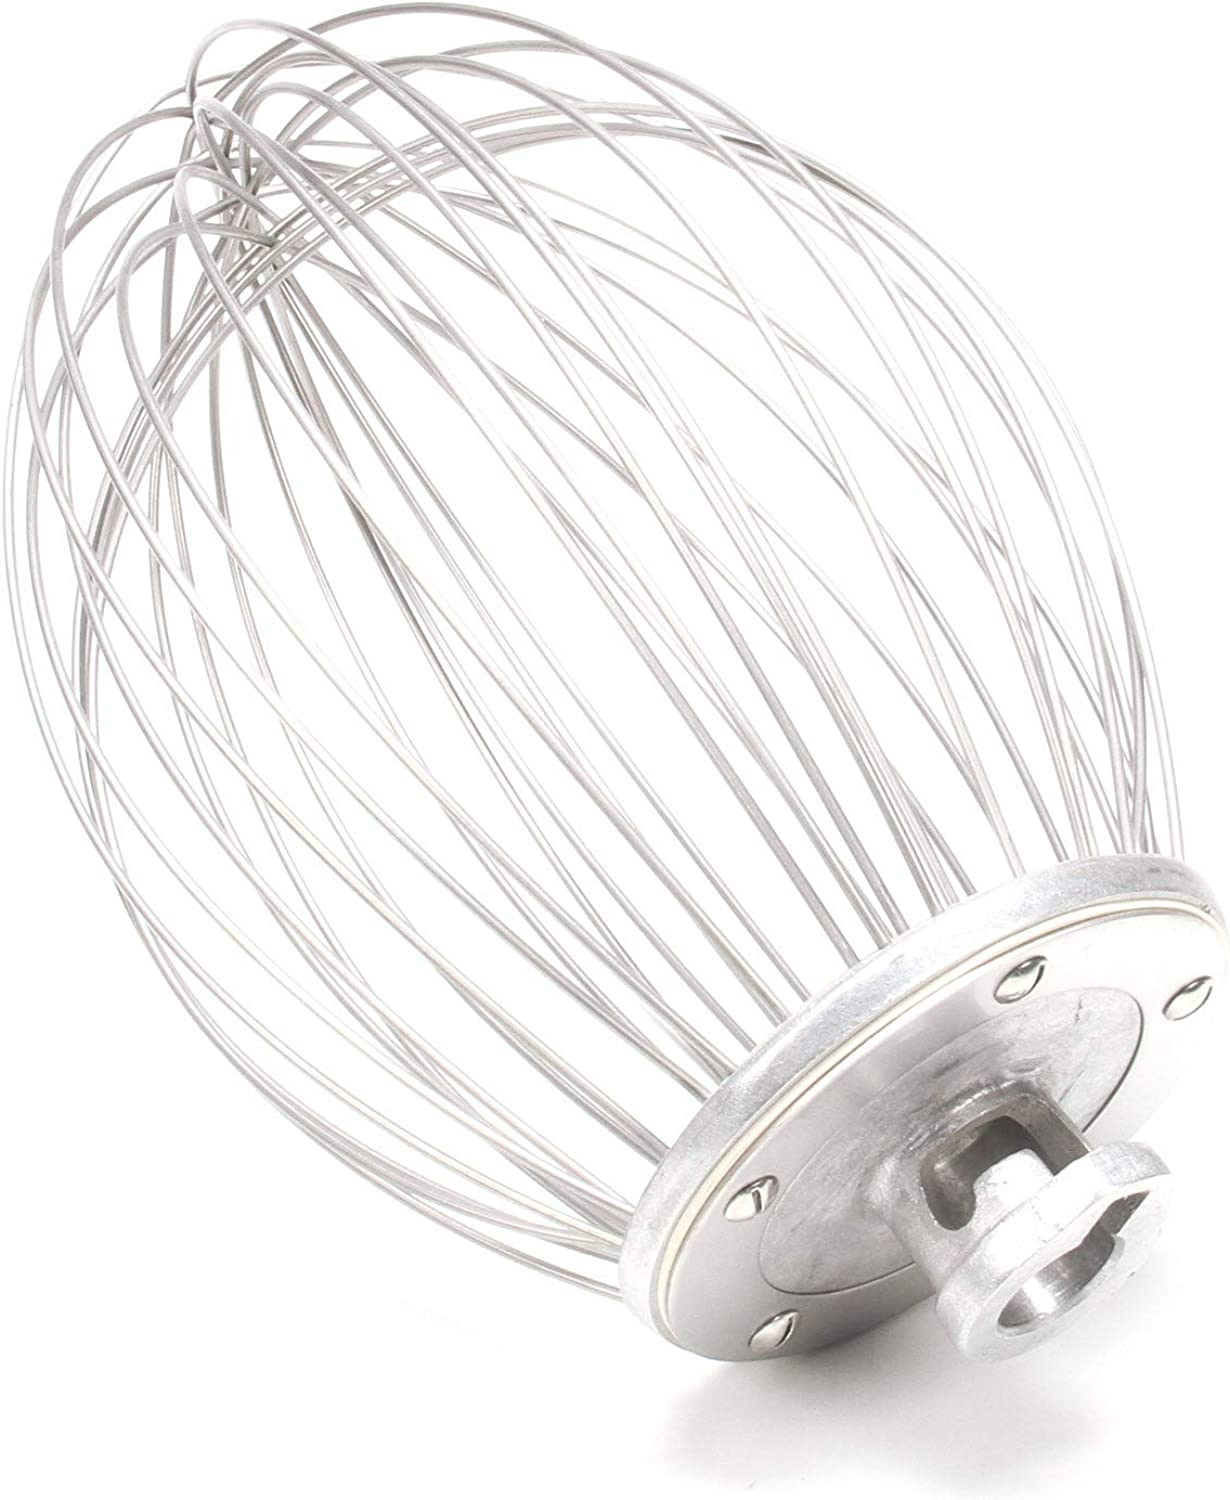 Hobart 00-275897 Whip Stainless Steel, 20 Qtr. D